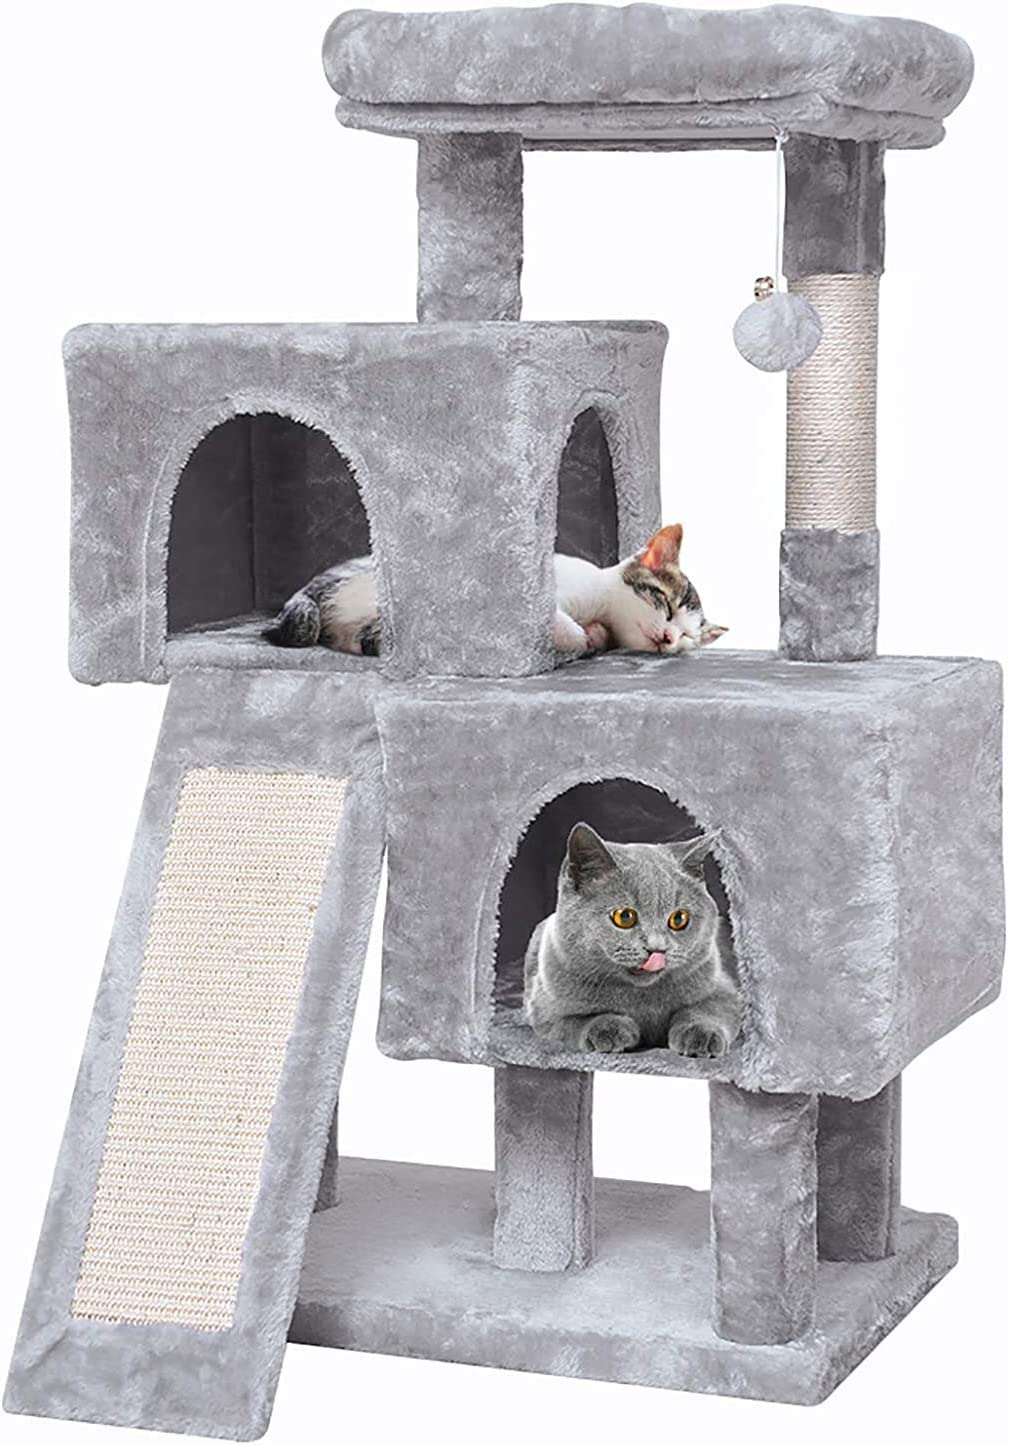 JISSBON Cat Tree Condo Tower, 38'' Multi Level Activity Center with Sisal-Covered Climbing Ladder Scratching Posts Plush Perch Cat Condos for Kittens Adult Cats Play House, Light Grey